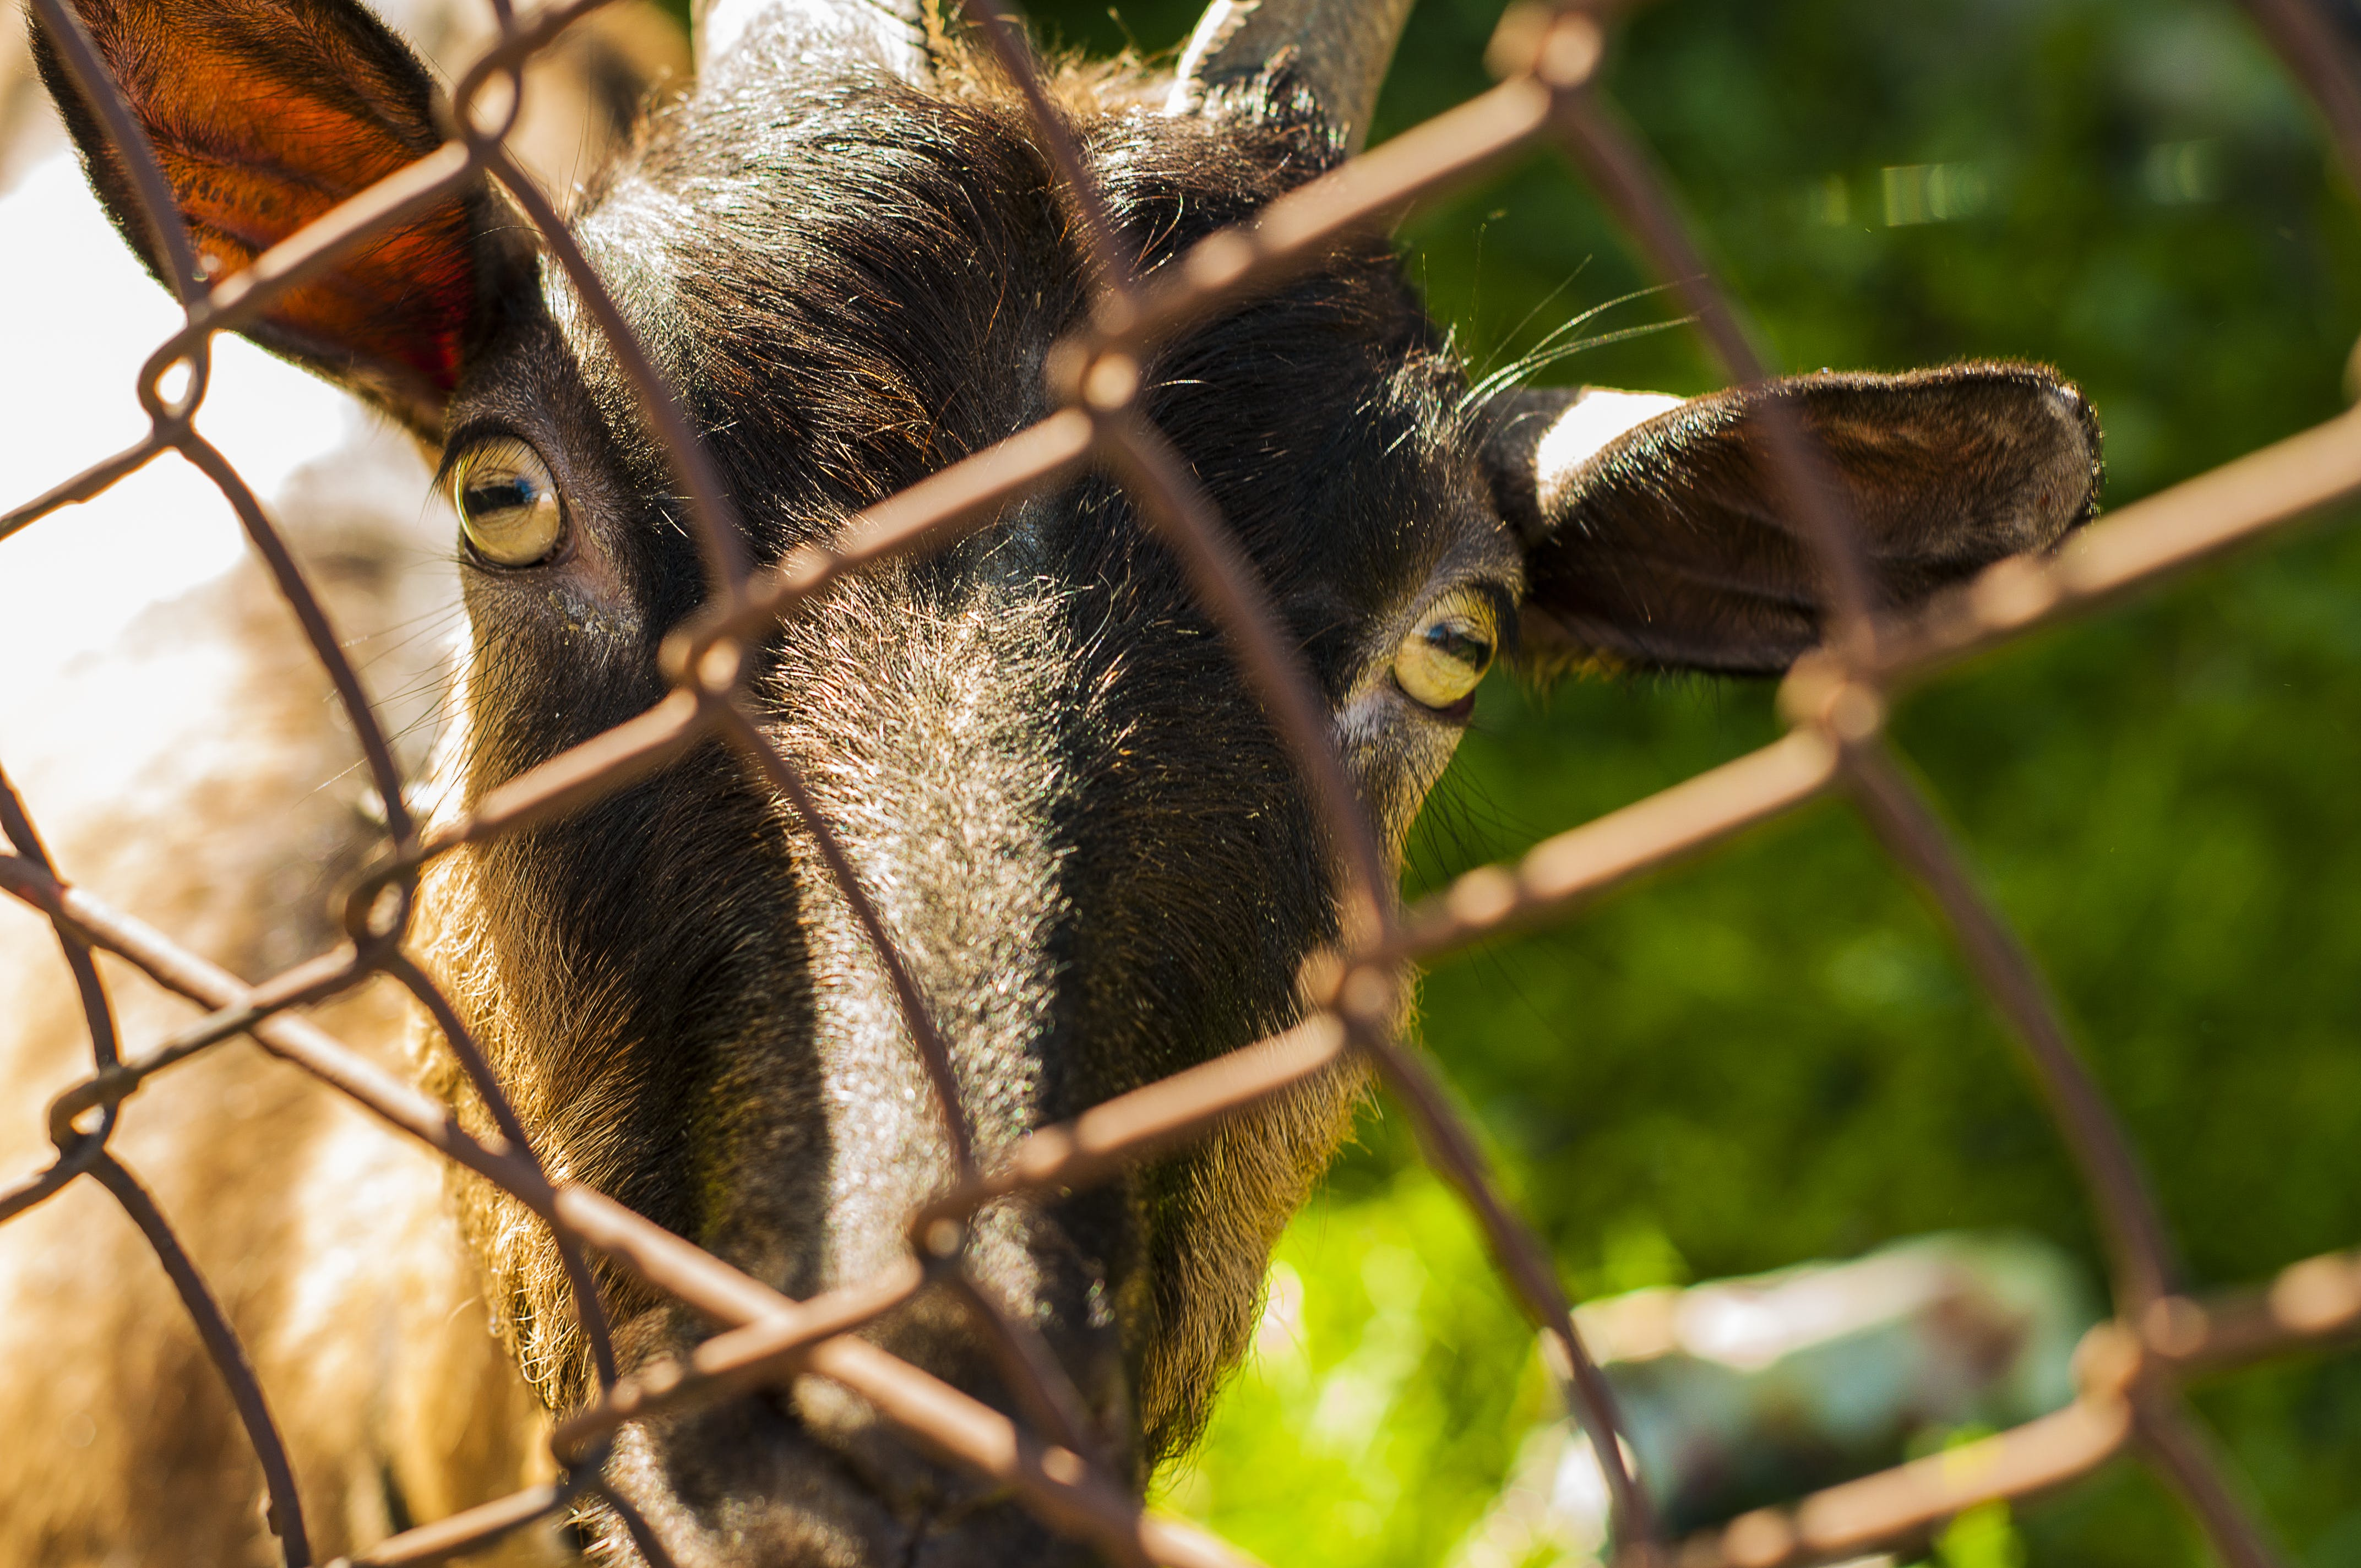 Close-up Photo of Brown Goat Beside Grey Cyclone Wire